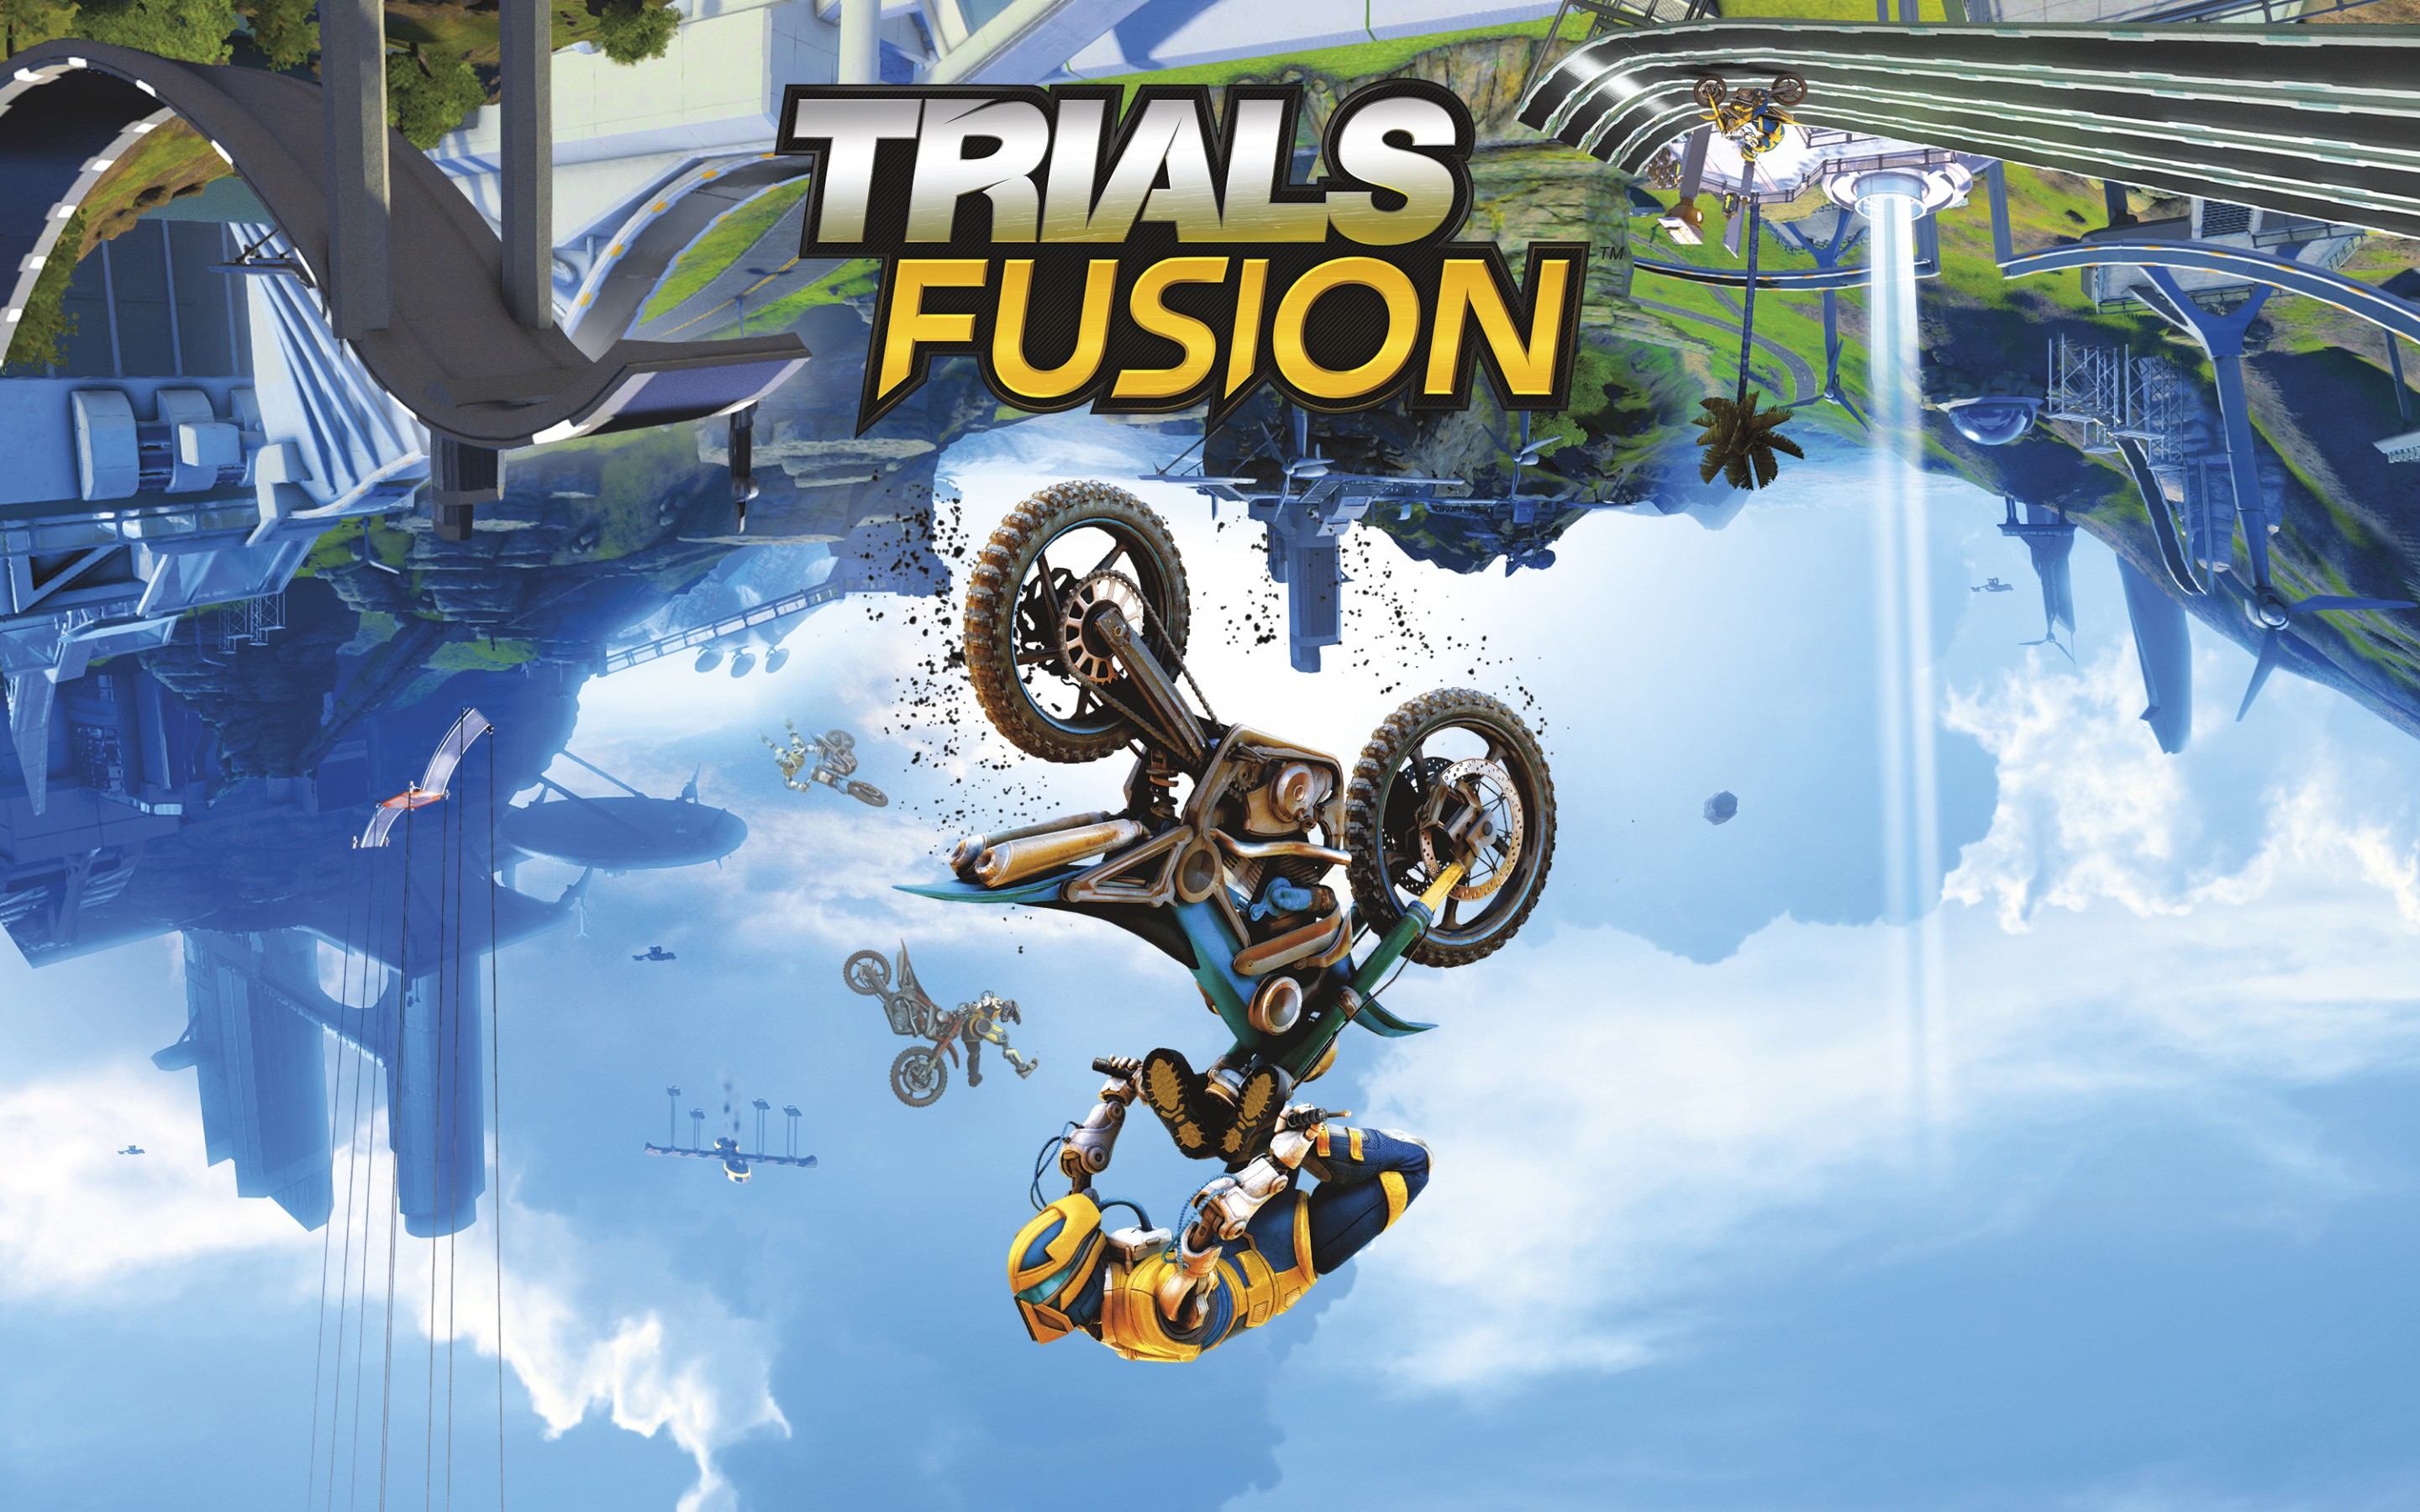 HQ Trials Fusion Wallpapers | File 948.94Kb